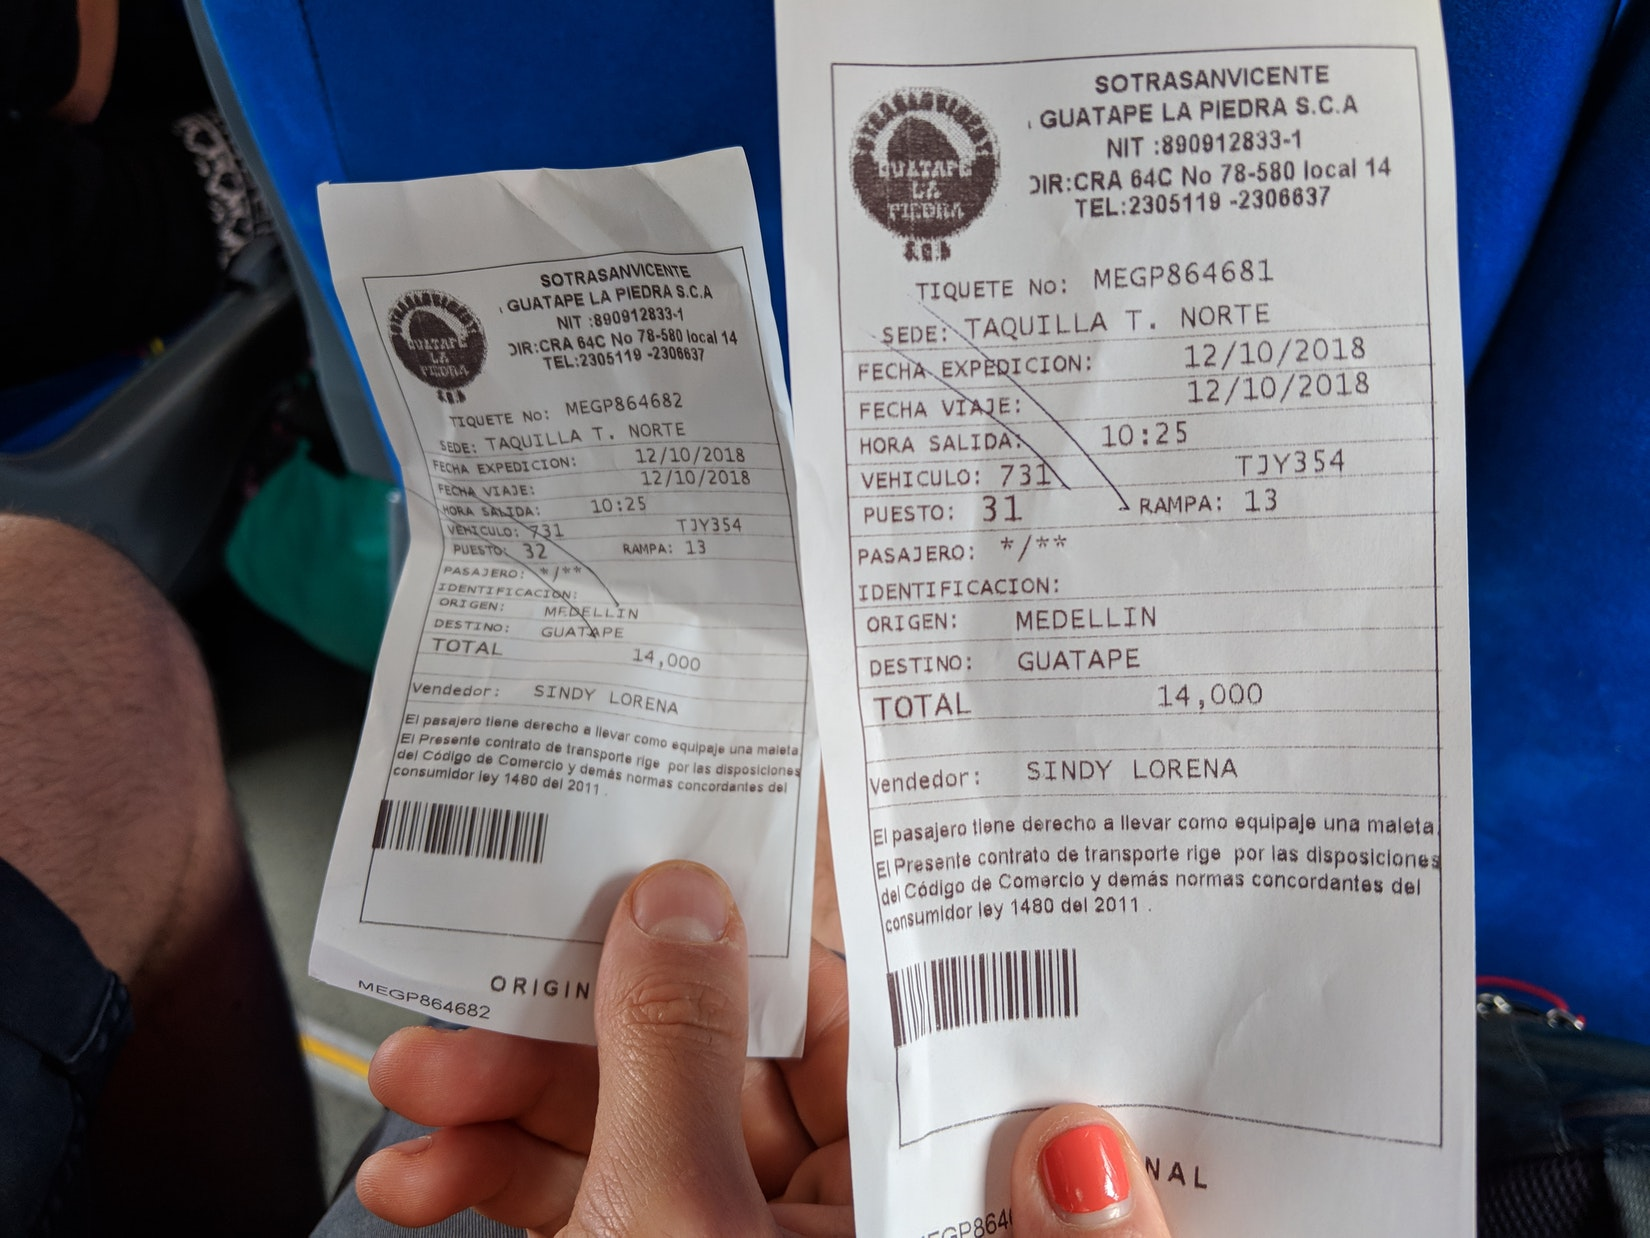 Bus ticket for how to get to Guatape from Medellin